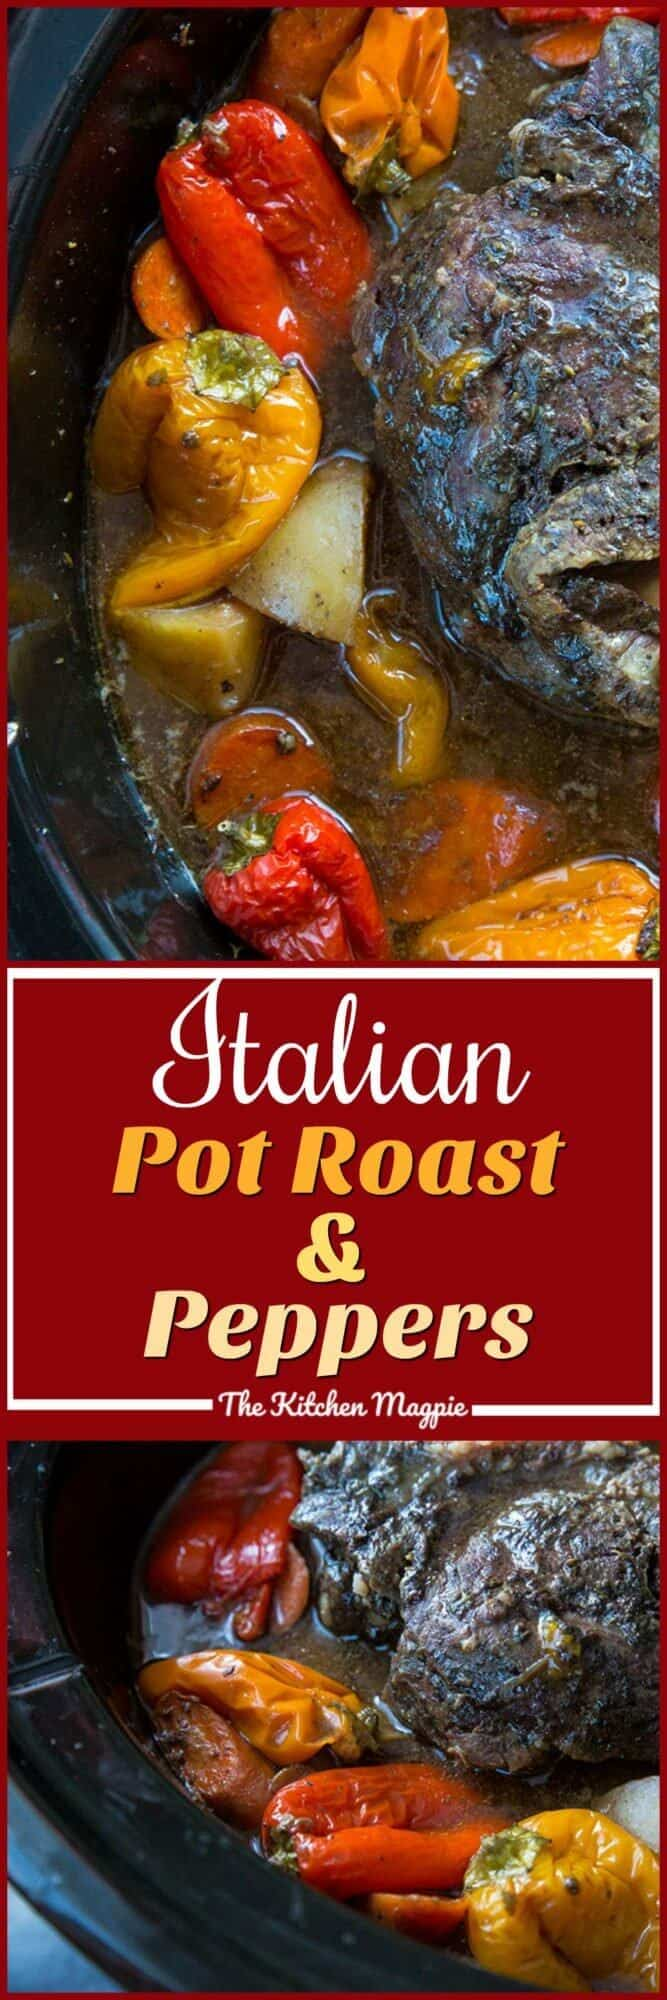 If you love sweet peppers and Italian spices, then this Slow Cooker Italian Pot Roast & Peppers is for you! #roastbeef #slowcooker #italian #peppers #recipe #dinner #supper